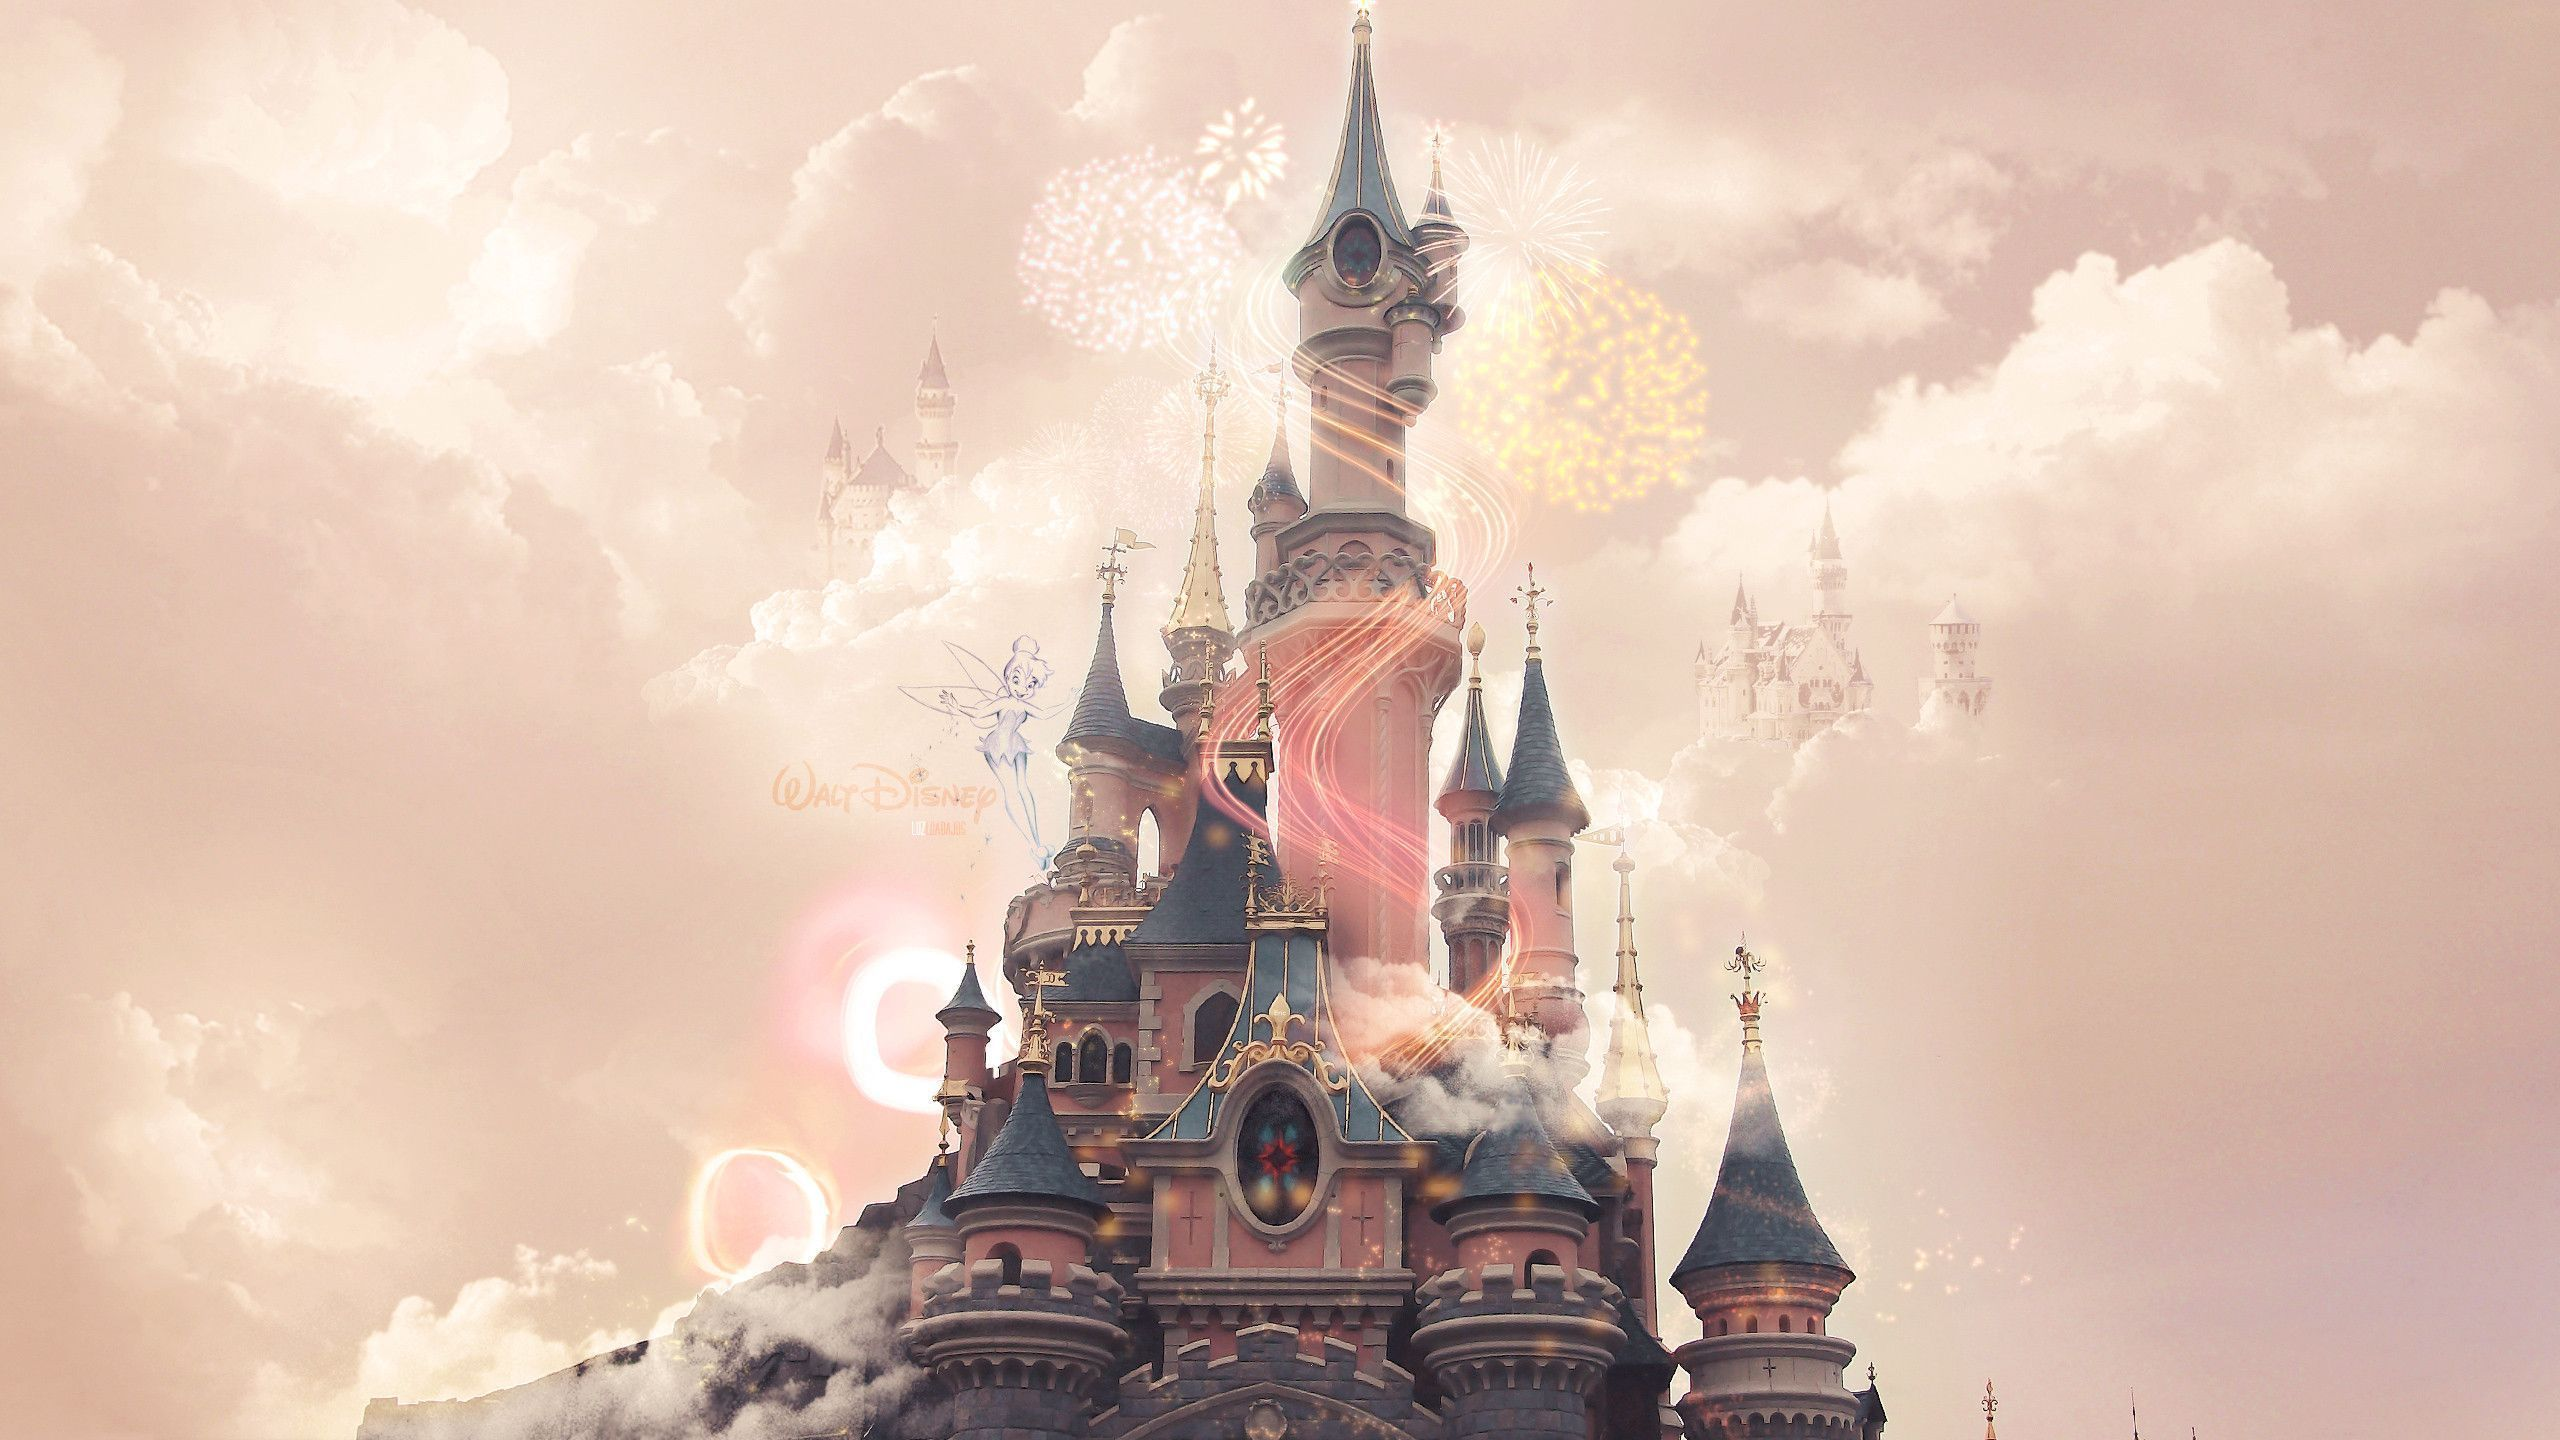 Disney castle background hd download media file pixelstalk view image larger and download voltagebd Image collections